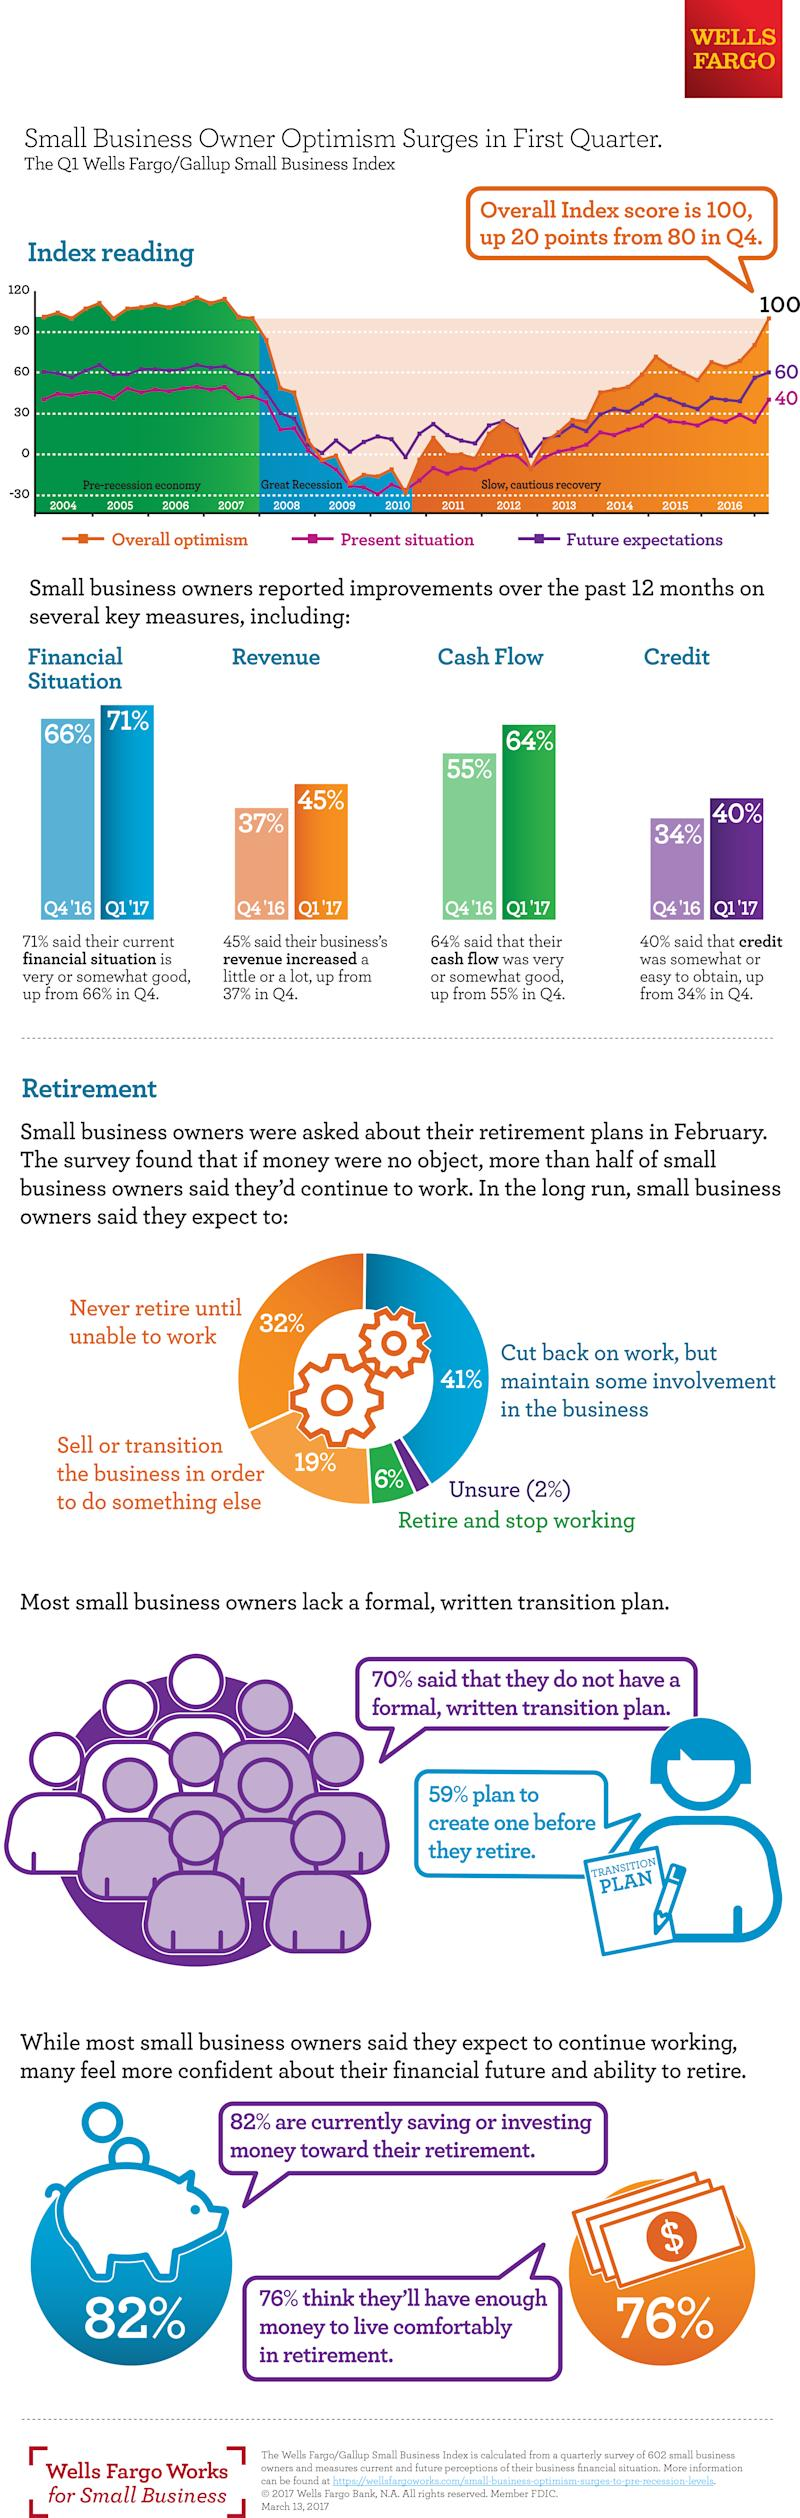 Wells Fargo Survey: Small Business Optimism Surges to Pre-Recession Levels